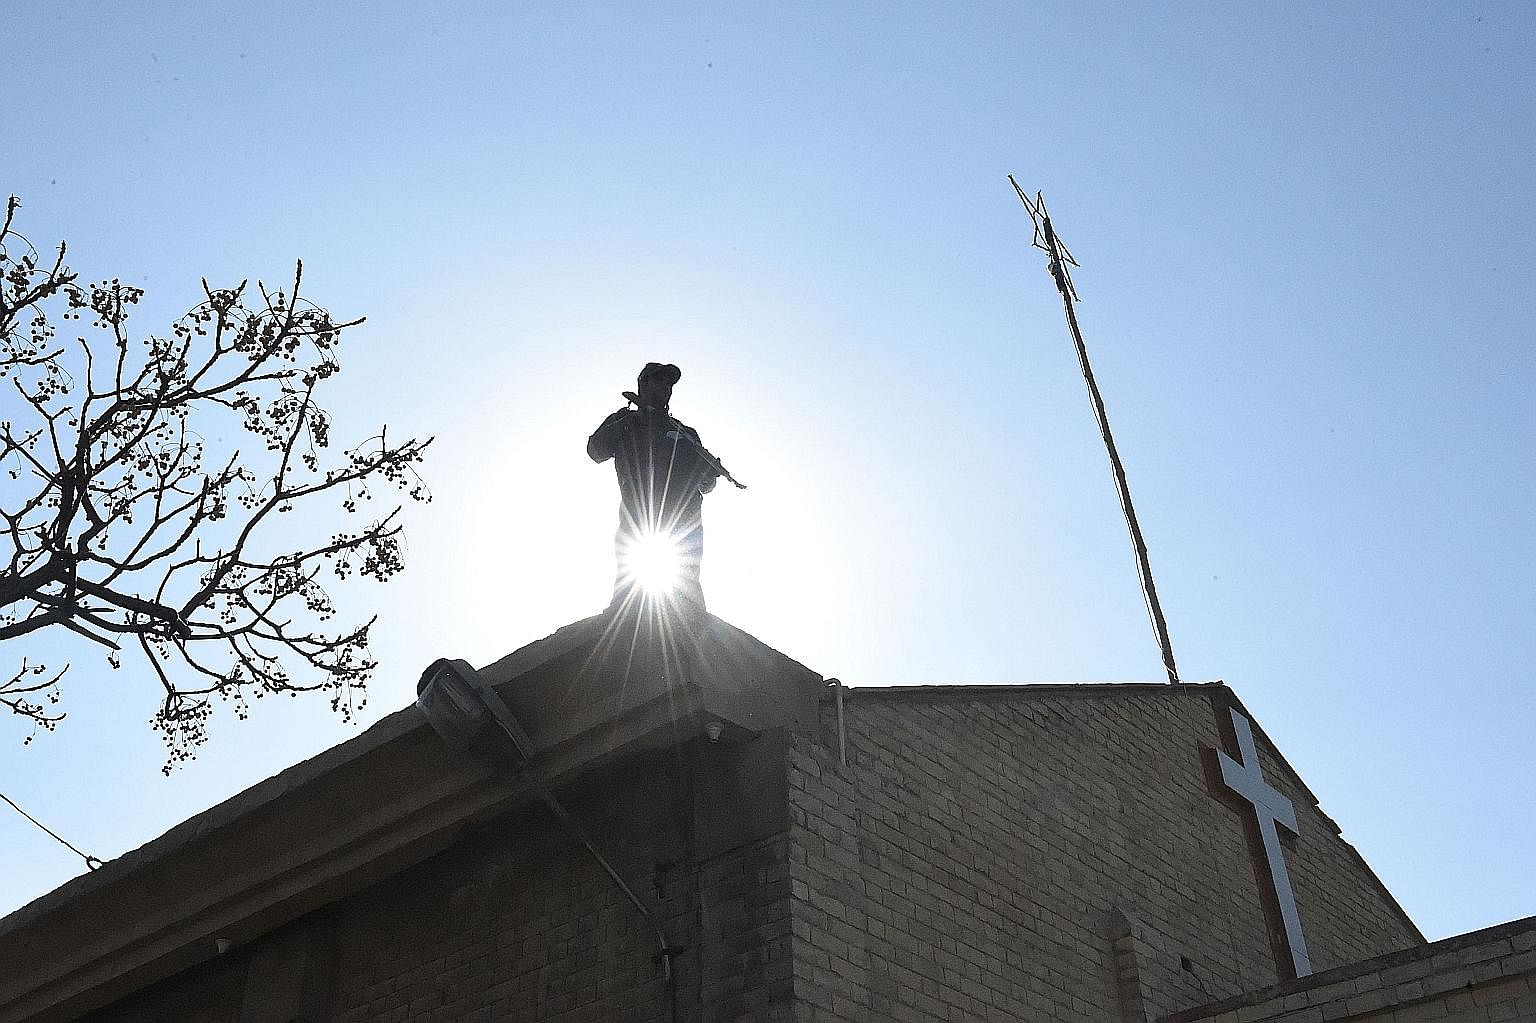 A policeman standing guard on the roof of a Methodist church in Quetta last December, a day after it was attacked by the ISIS group.